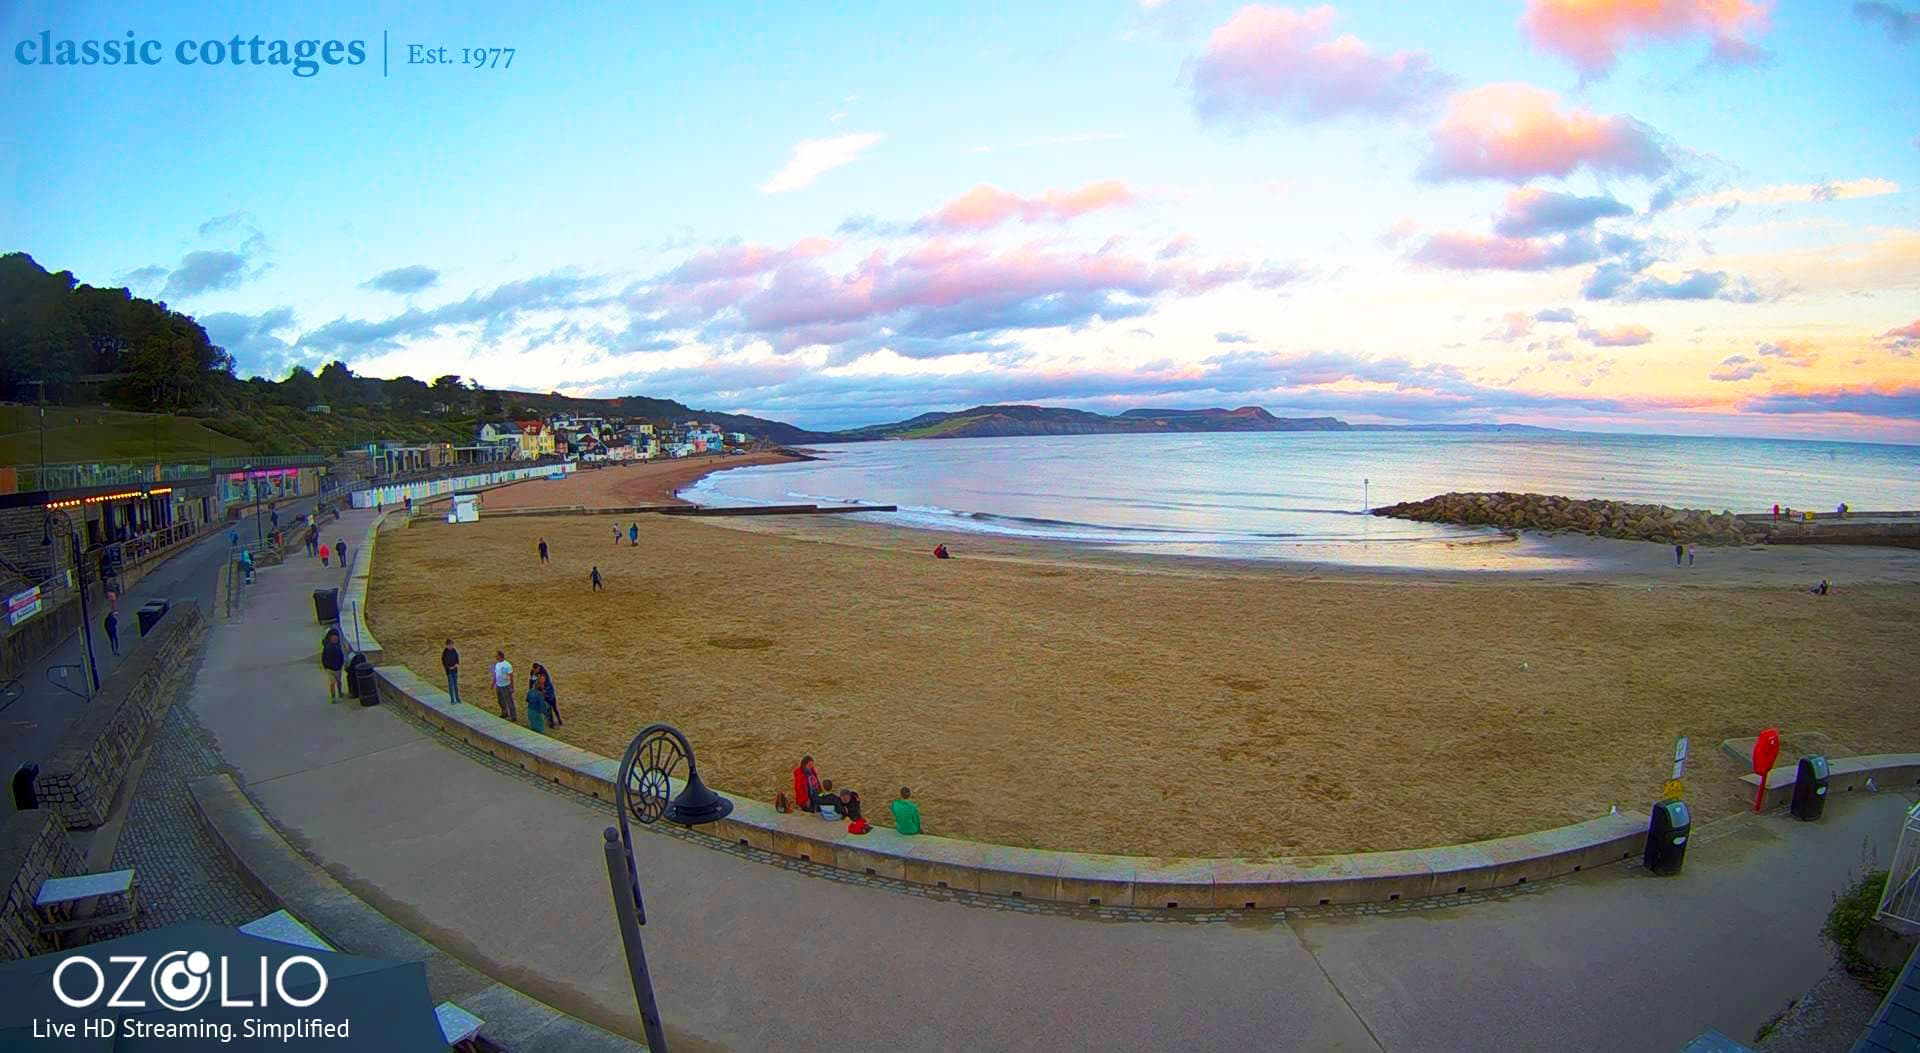 I love the Ozolio livestreams, like this one in Lyme Regis